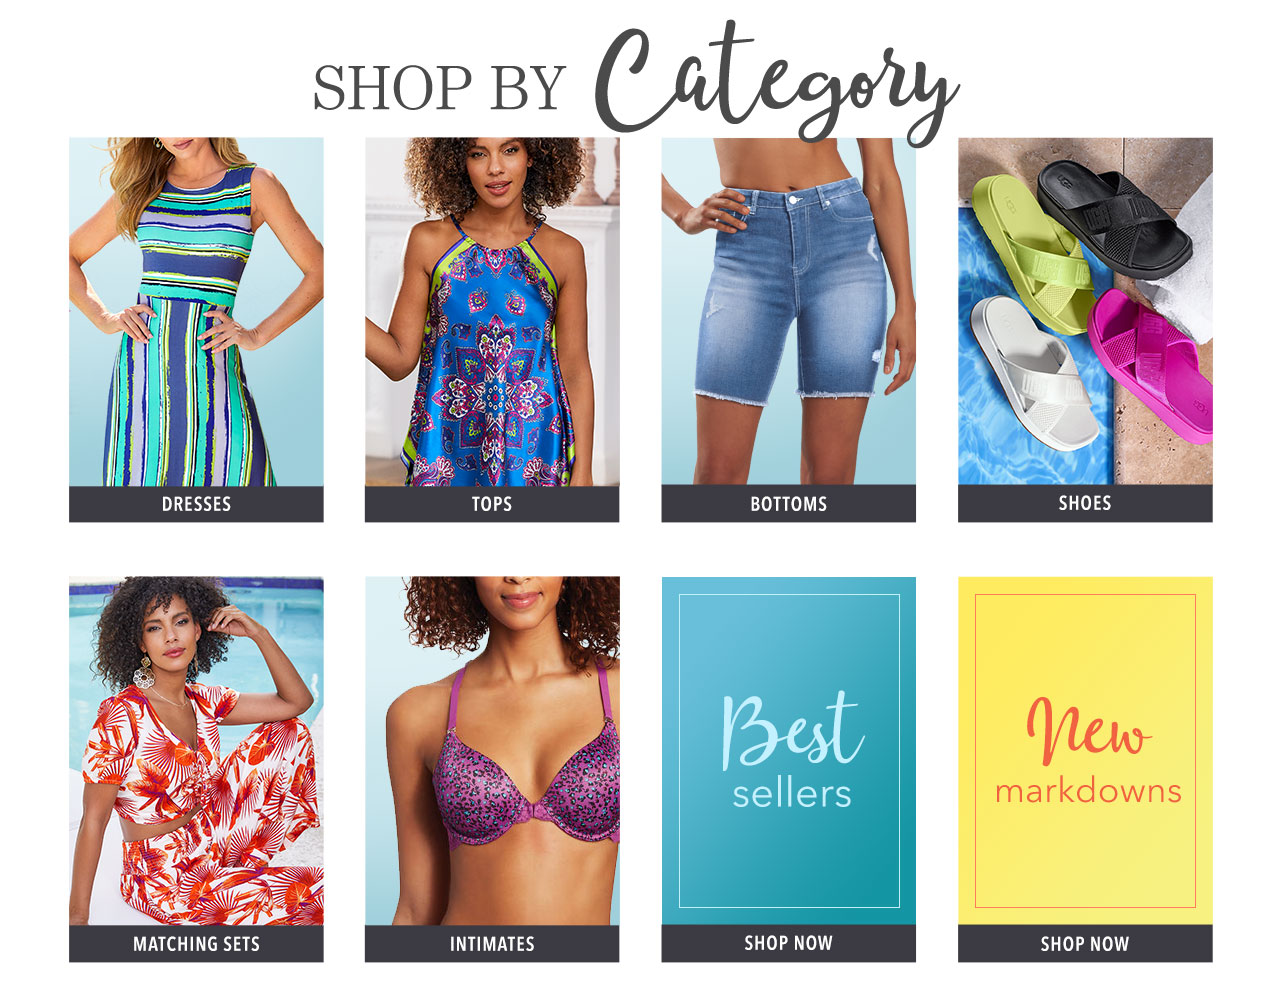 Shop dresses, tops, bottoms, shoes, matching sets, intimates, best sellers, and clearance.